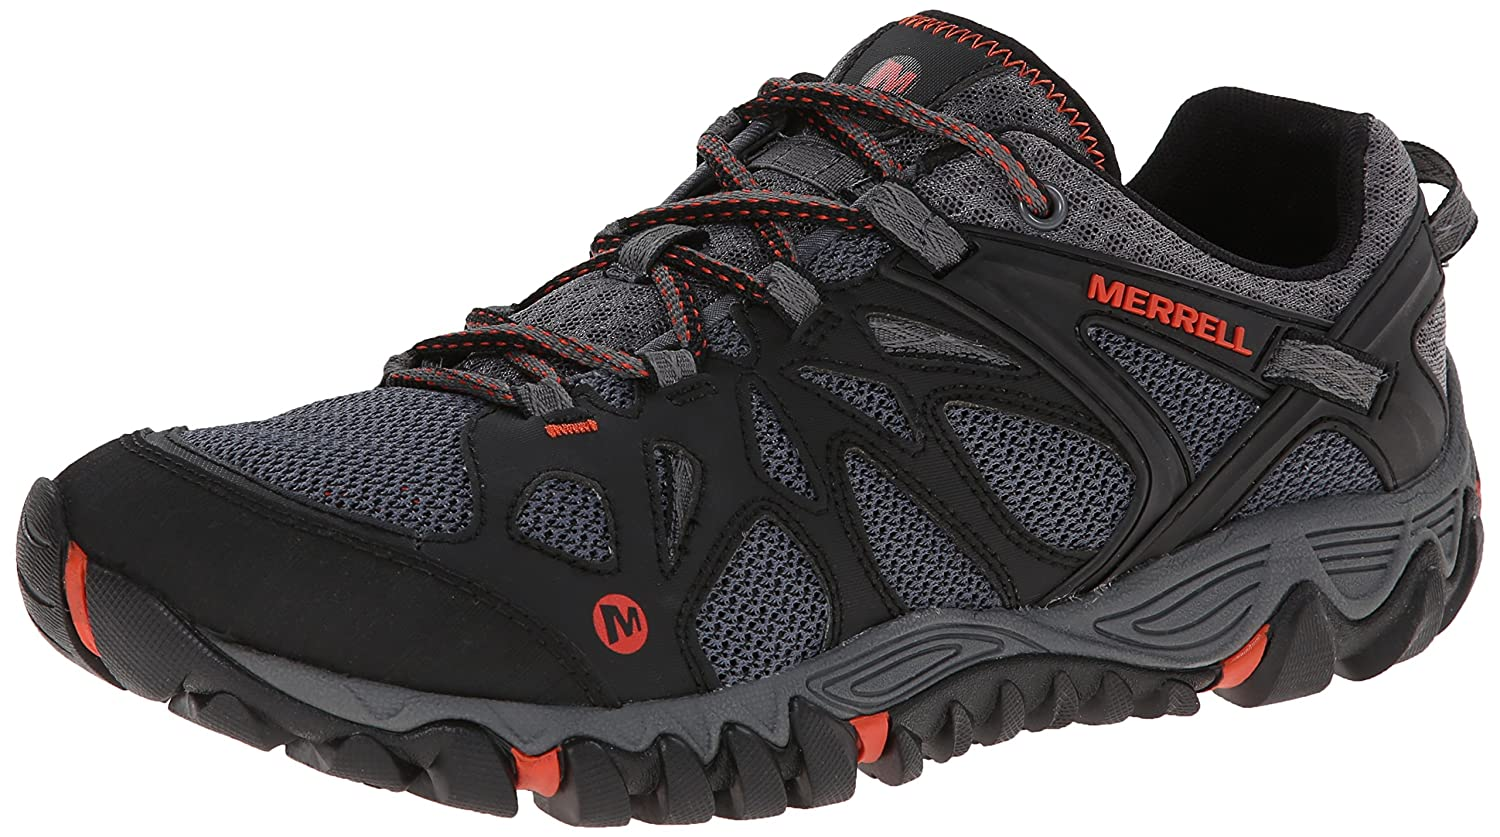 Merrell Men's ALL OUT BLAZE AERO SPORT Hiking Shoes J37687